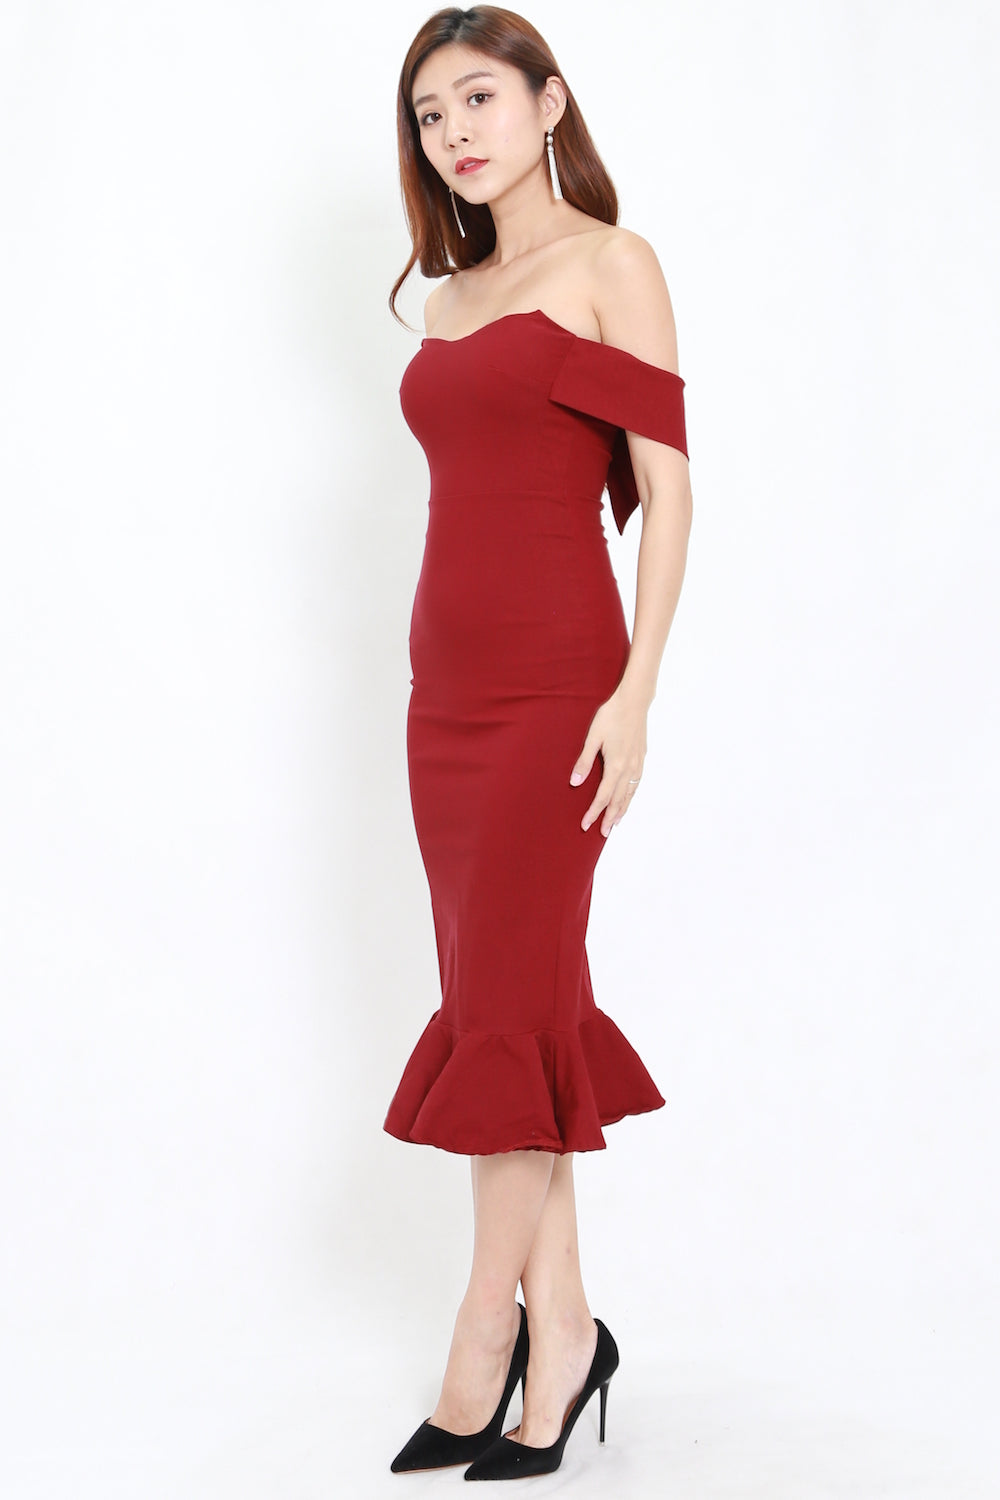 ddc429c09690 Mermaid Off Shoulder Midi Dress (Maroon) – Carrislabelle